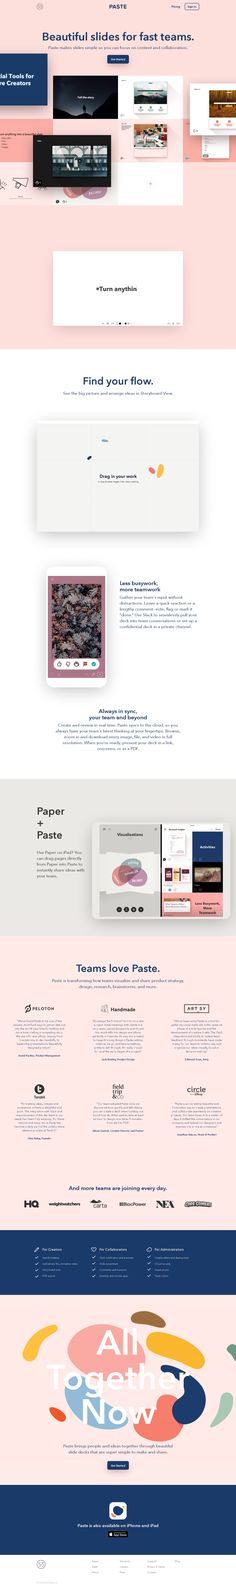 Paste by FiftyThree | Beautiful Slides for Fast Teams